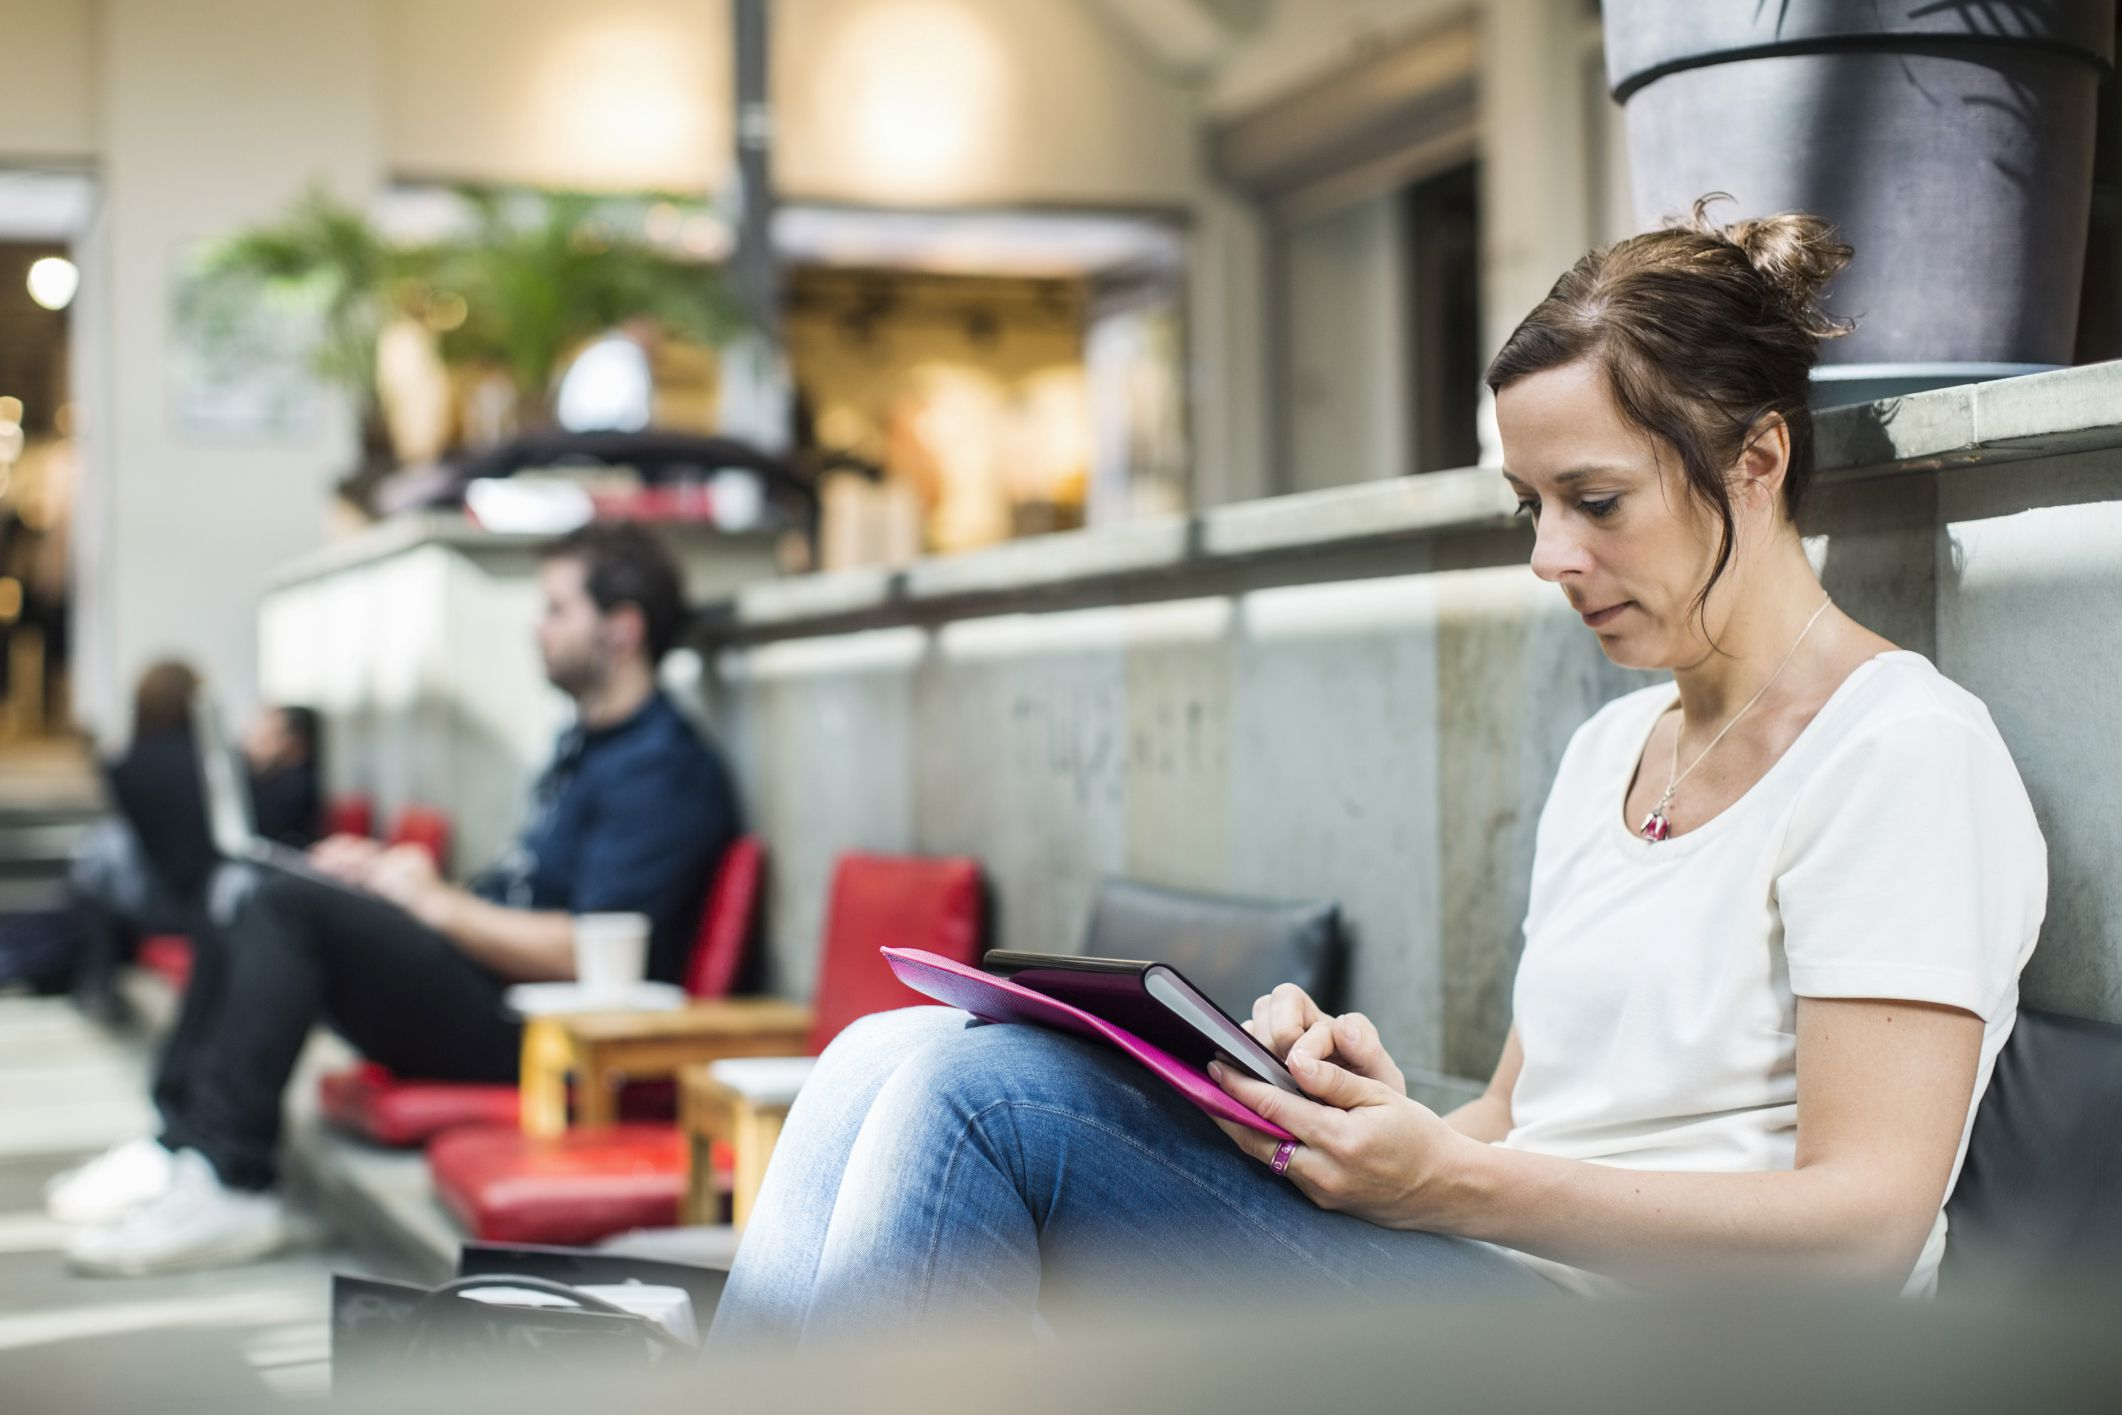 Public Wi-Fi Is Handy, But Is It Too Risky for Online Banking?